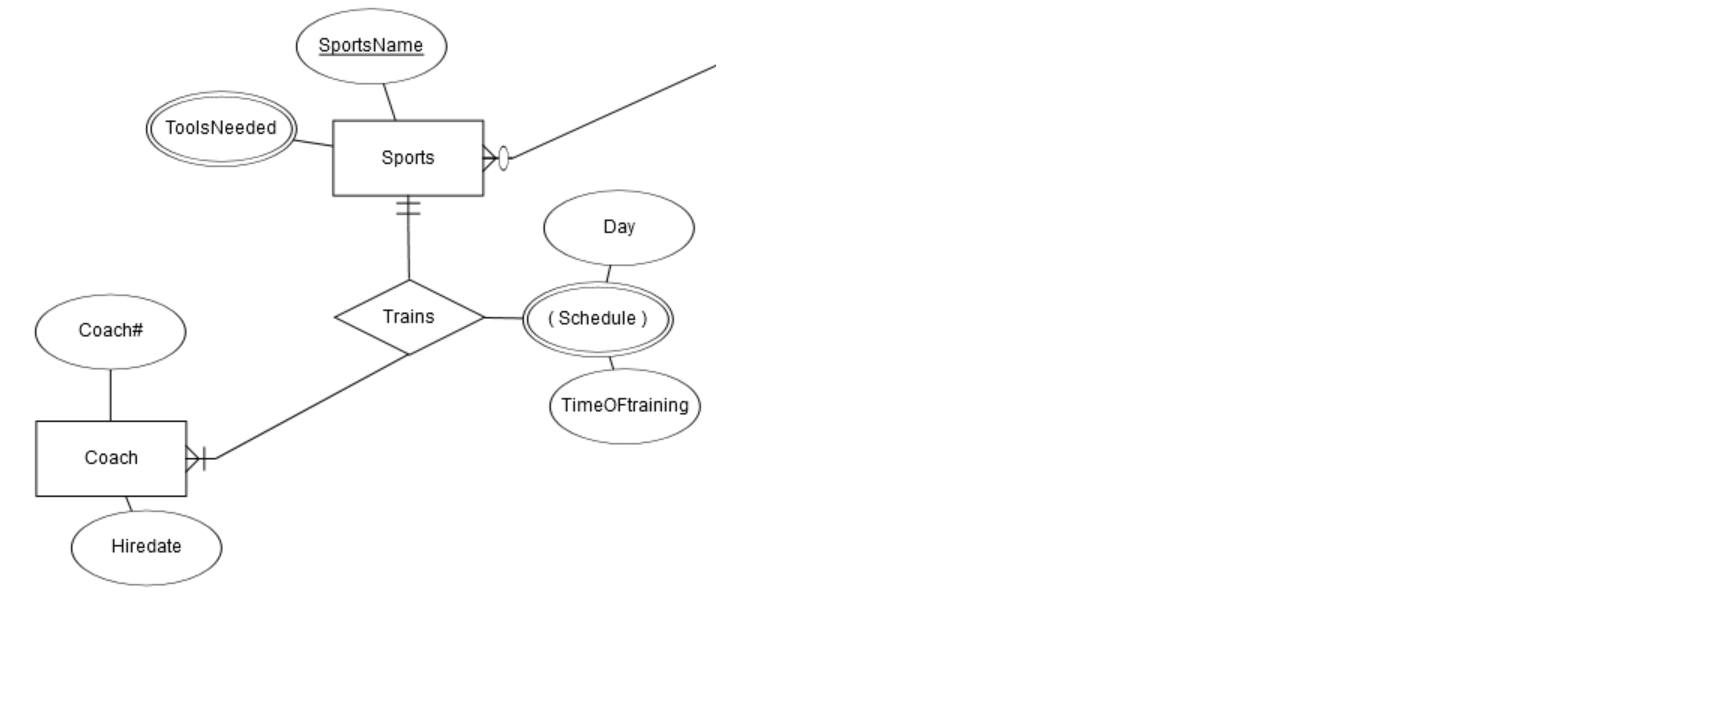 How To Convert This Er Diagram To Relational Schema - Stack throughout Er Diagram Convert To Relational Schema